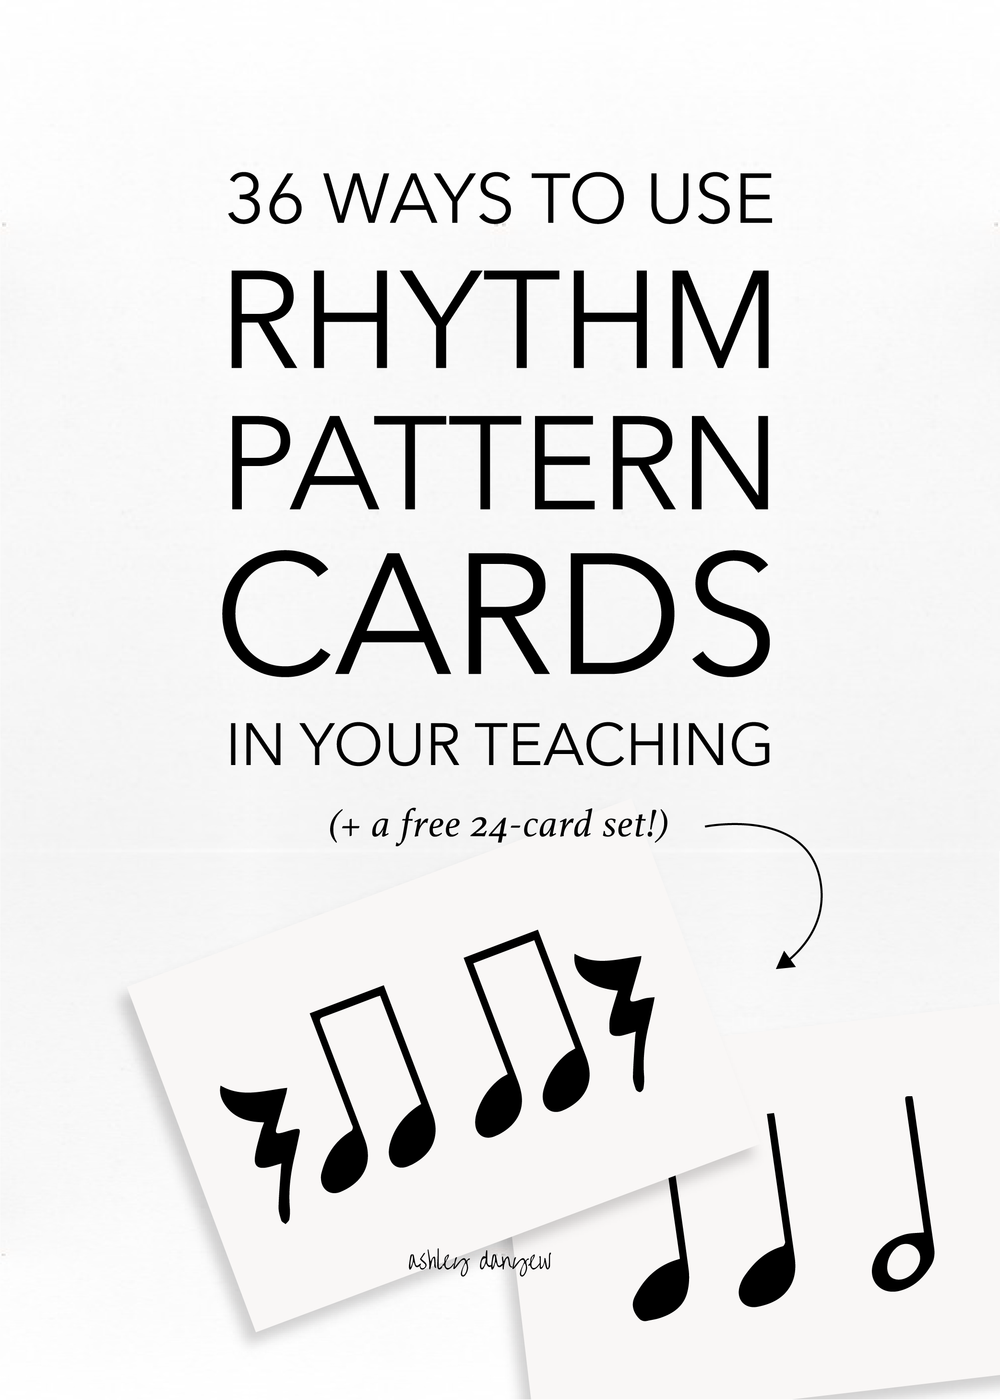 Copy of 36 Ways to Use Rhythm Pattern Cards In Your Teaching